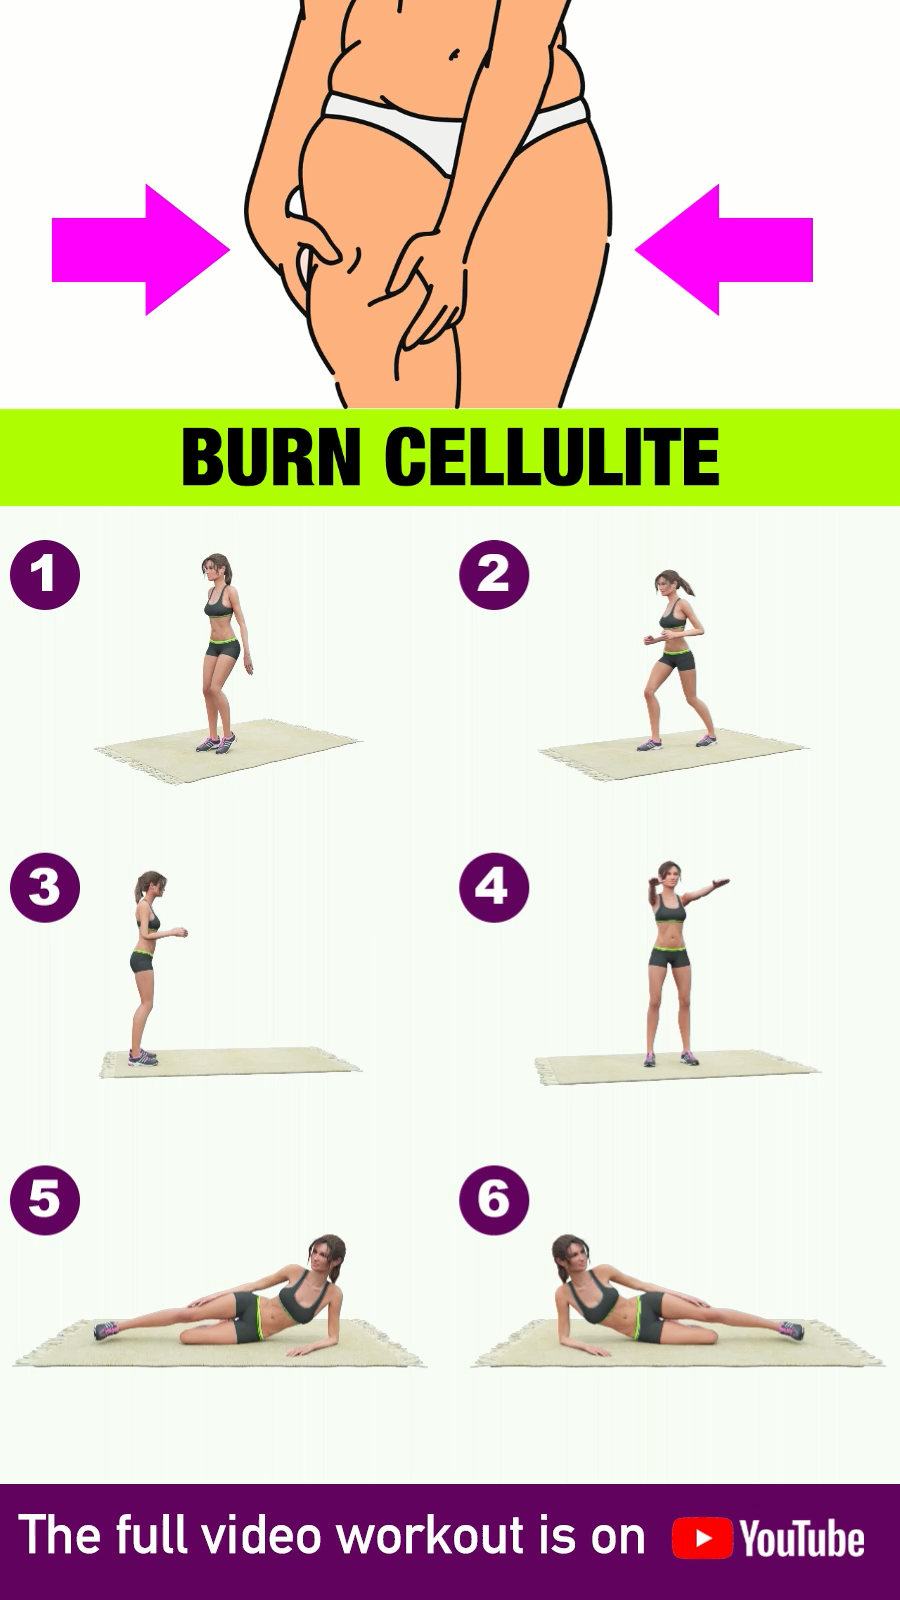 Burn Cellulite: Drastically Reduce Leg Fat With Home Exercises